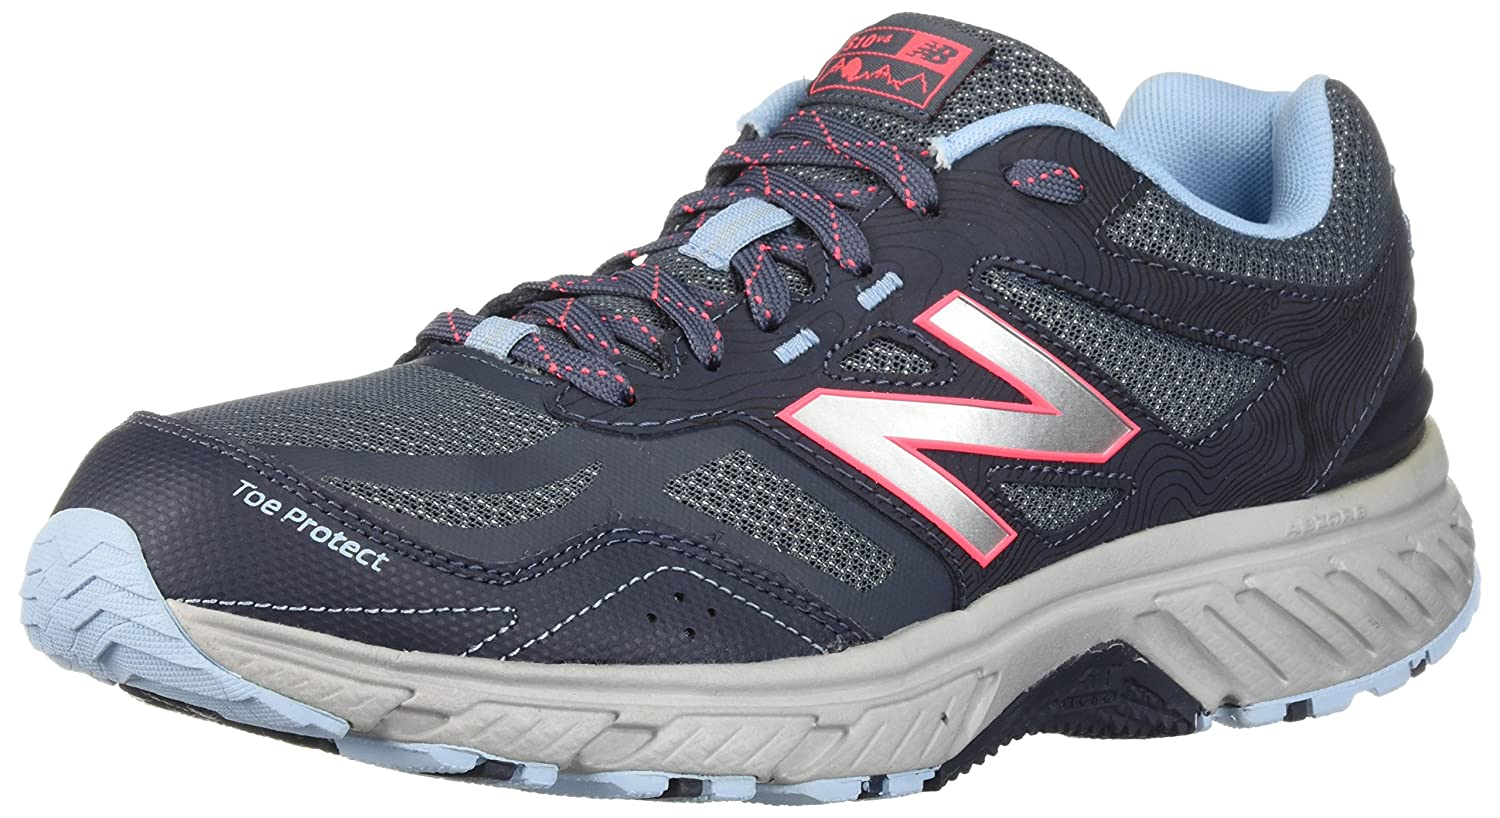 New Balance Women's 510v4 Cushioning Trail Running Shoe B0751Q92GS 9.5 D US|Thunder